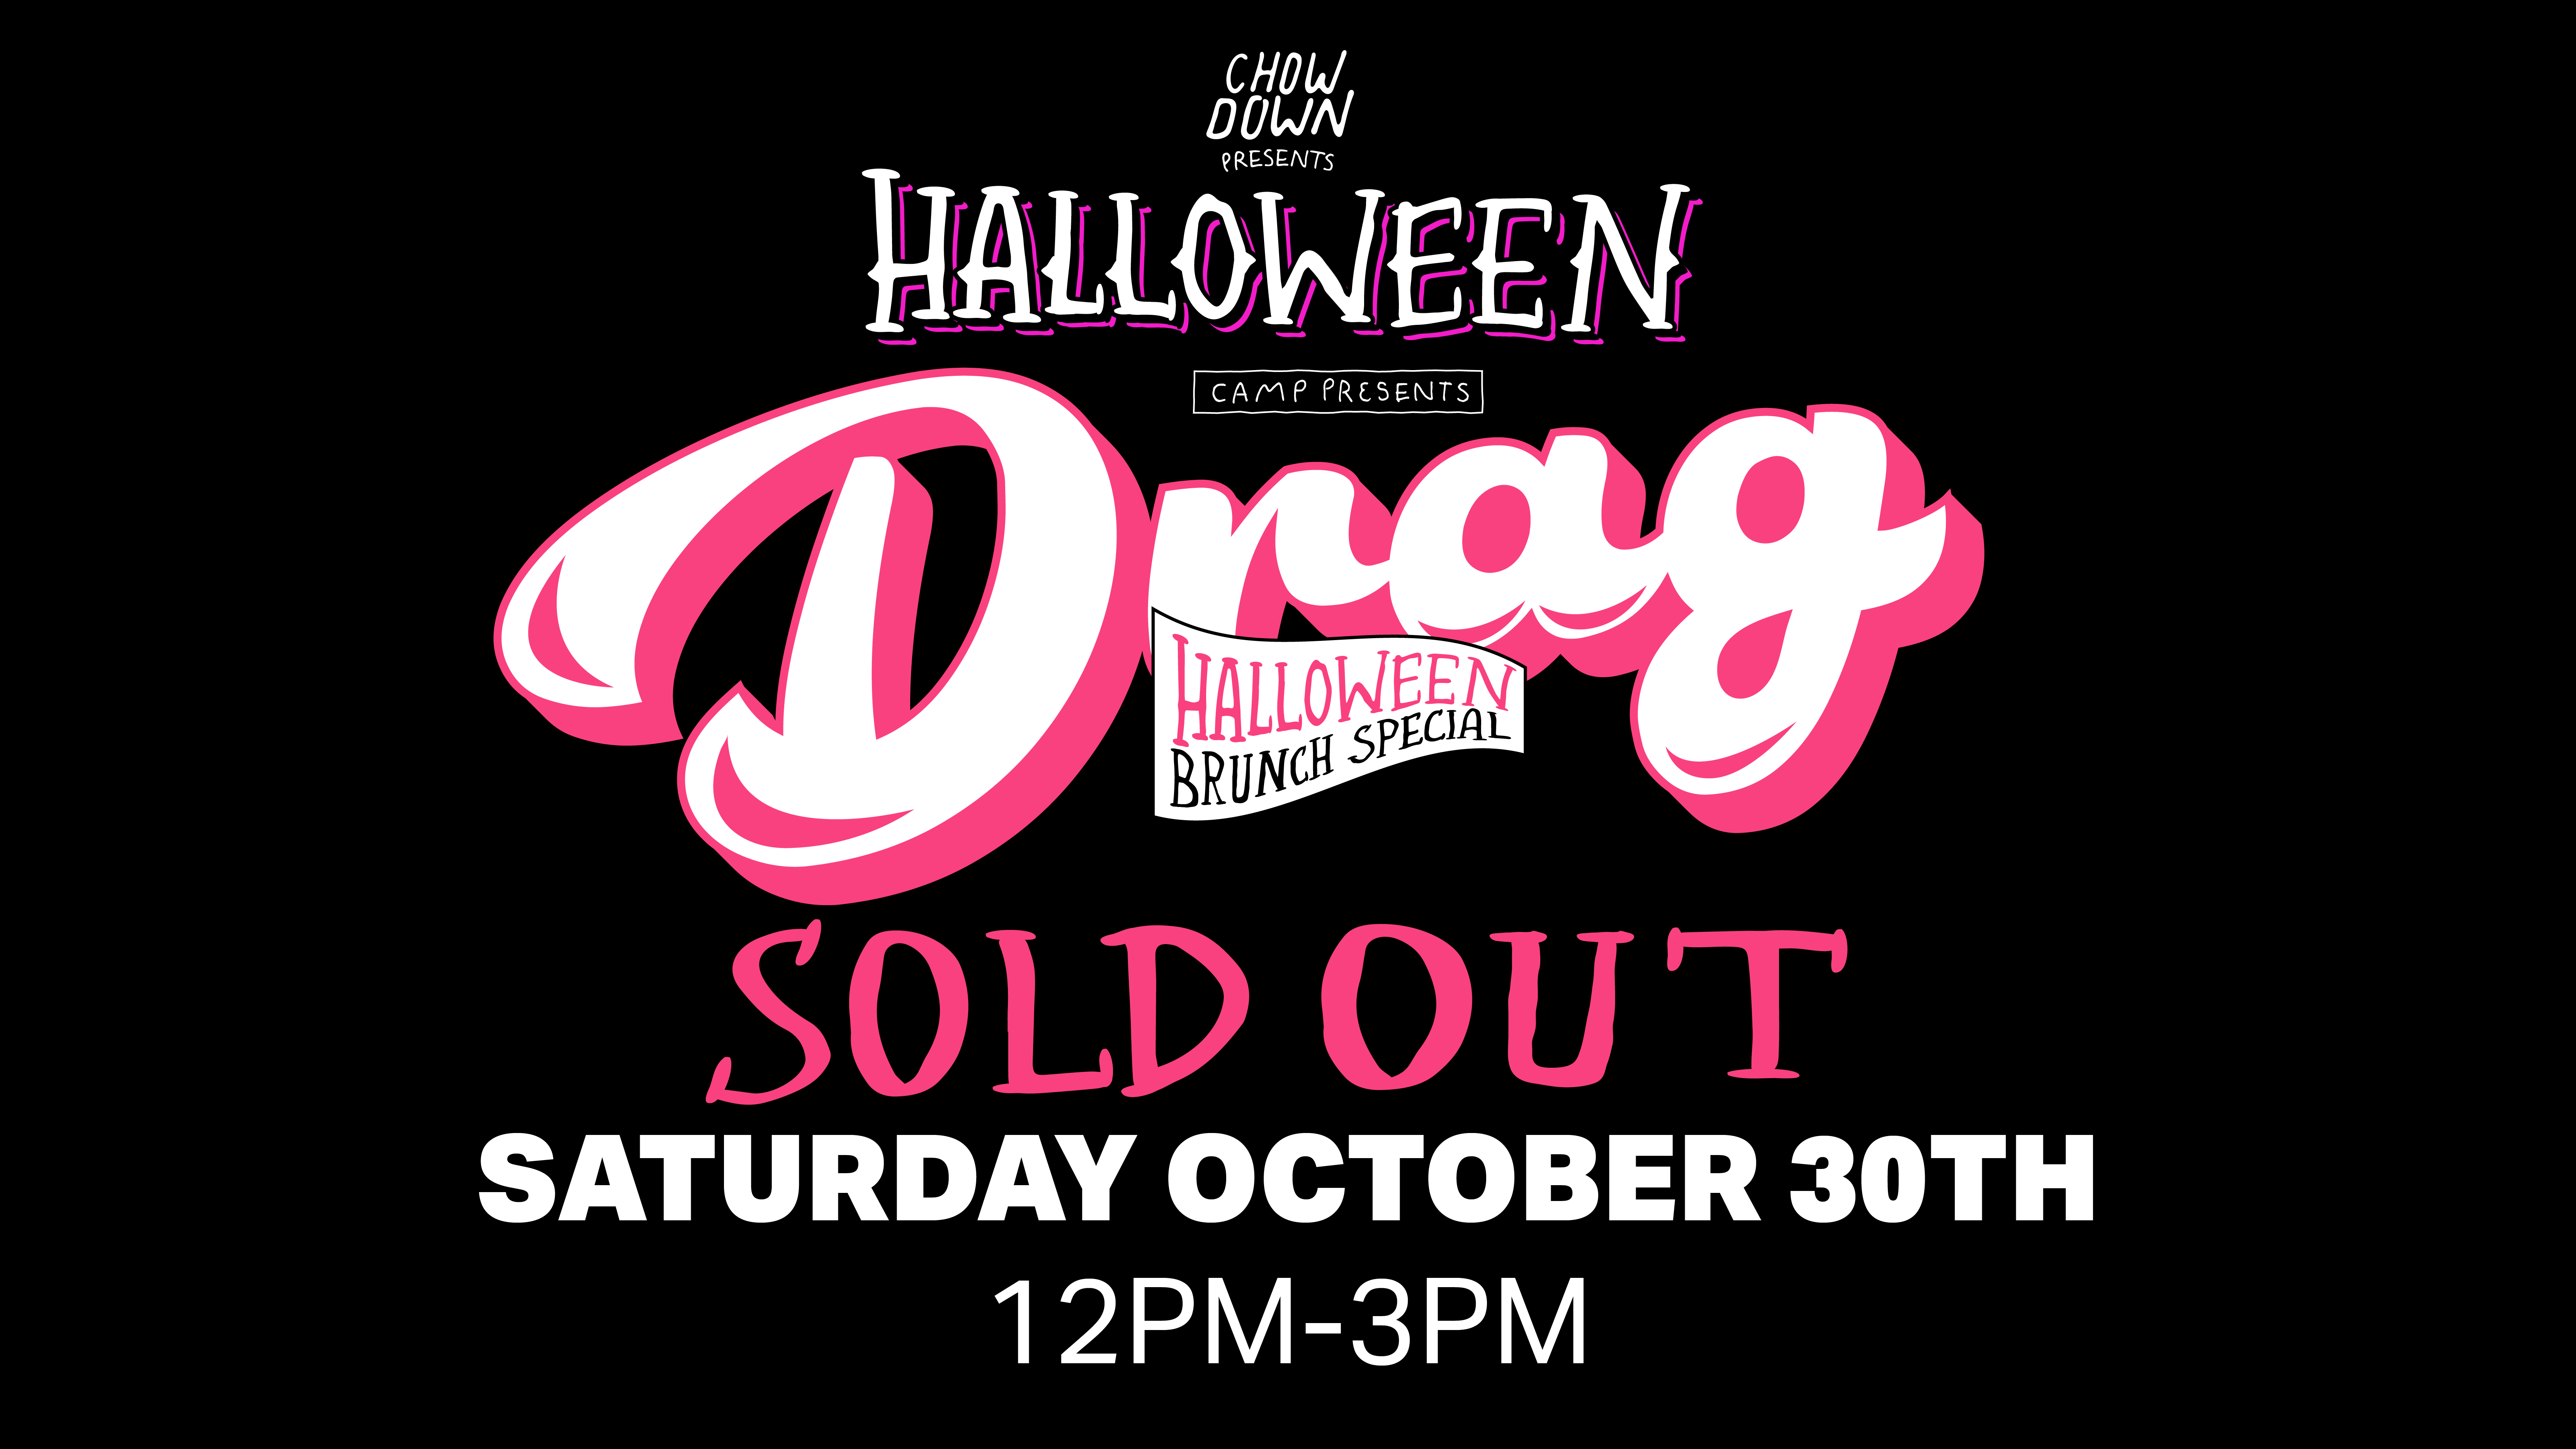 Chow Down Halloween: Saturday 30th October – A DRAG HALLOWEEN BRUNCH SPECIAL